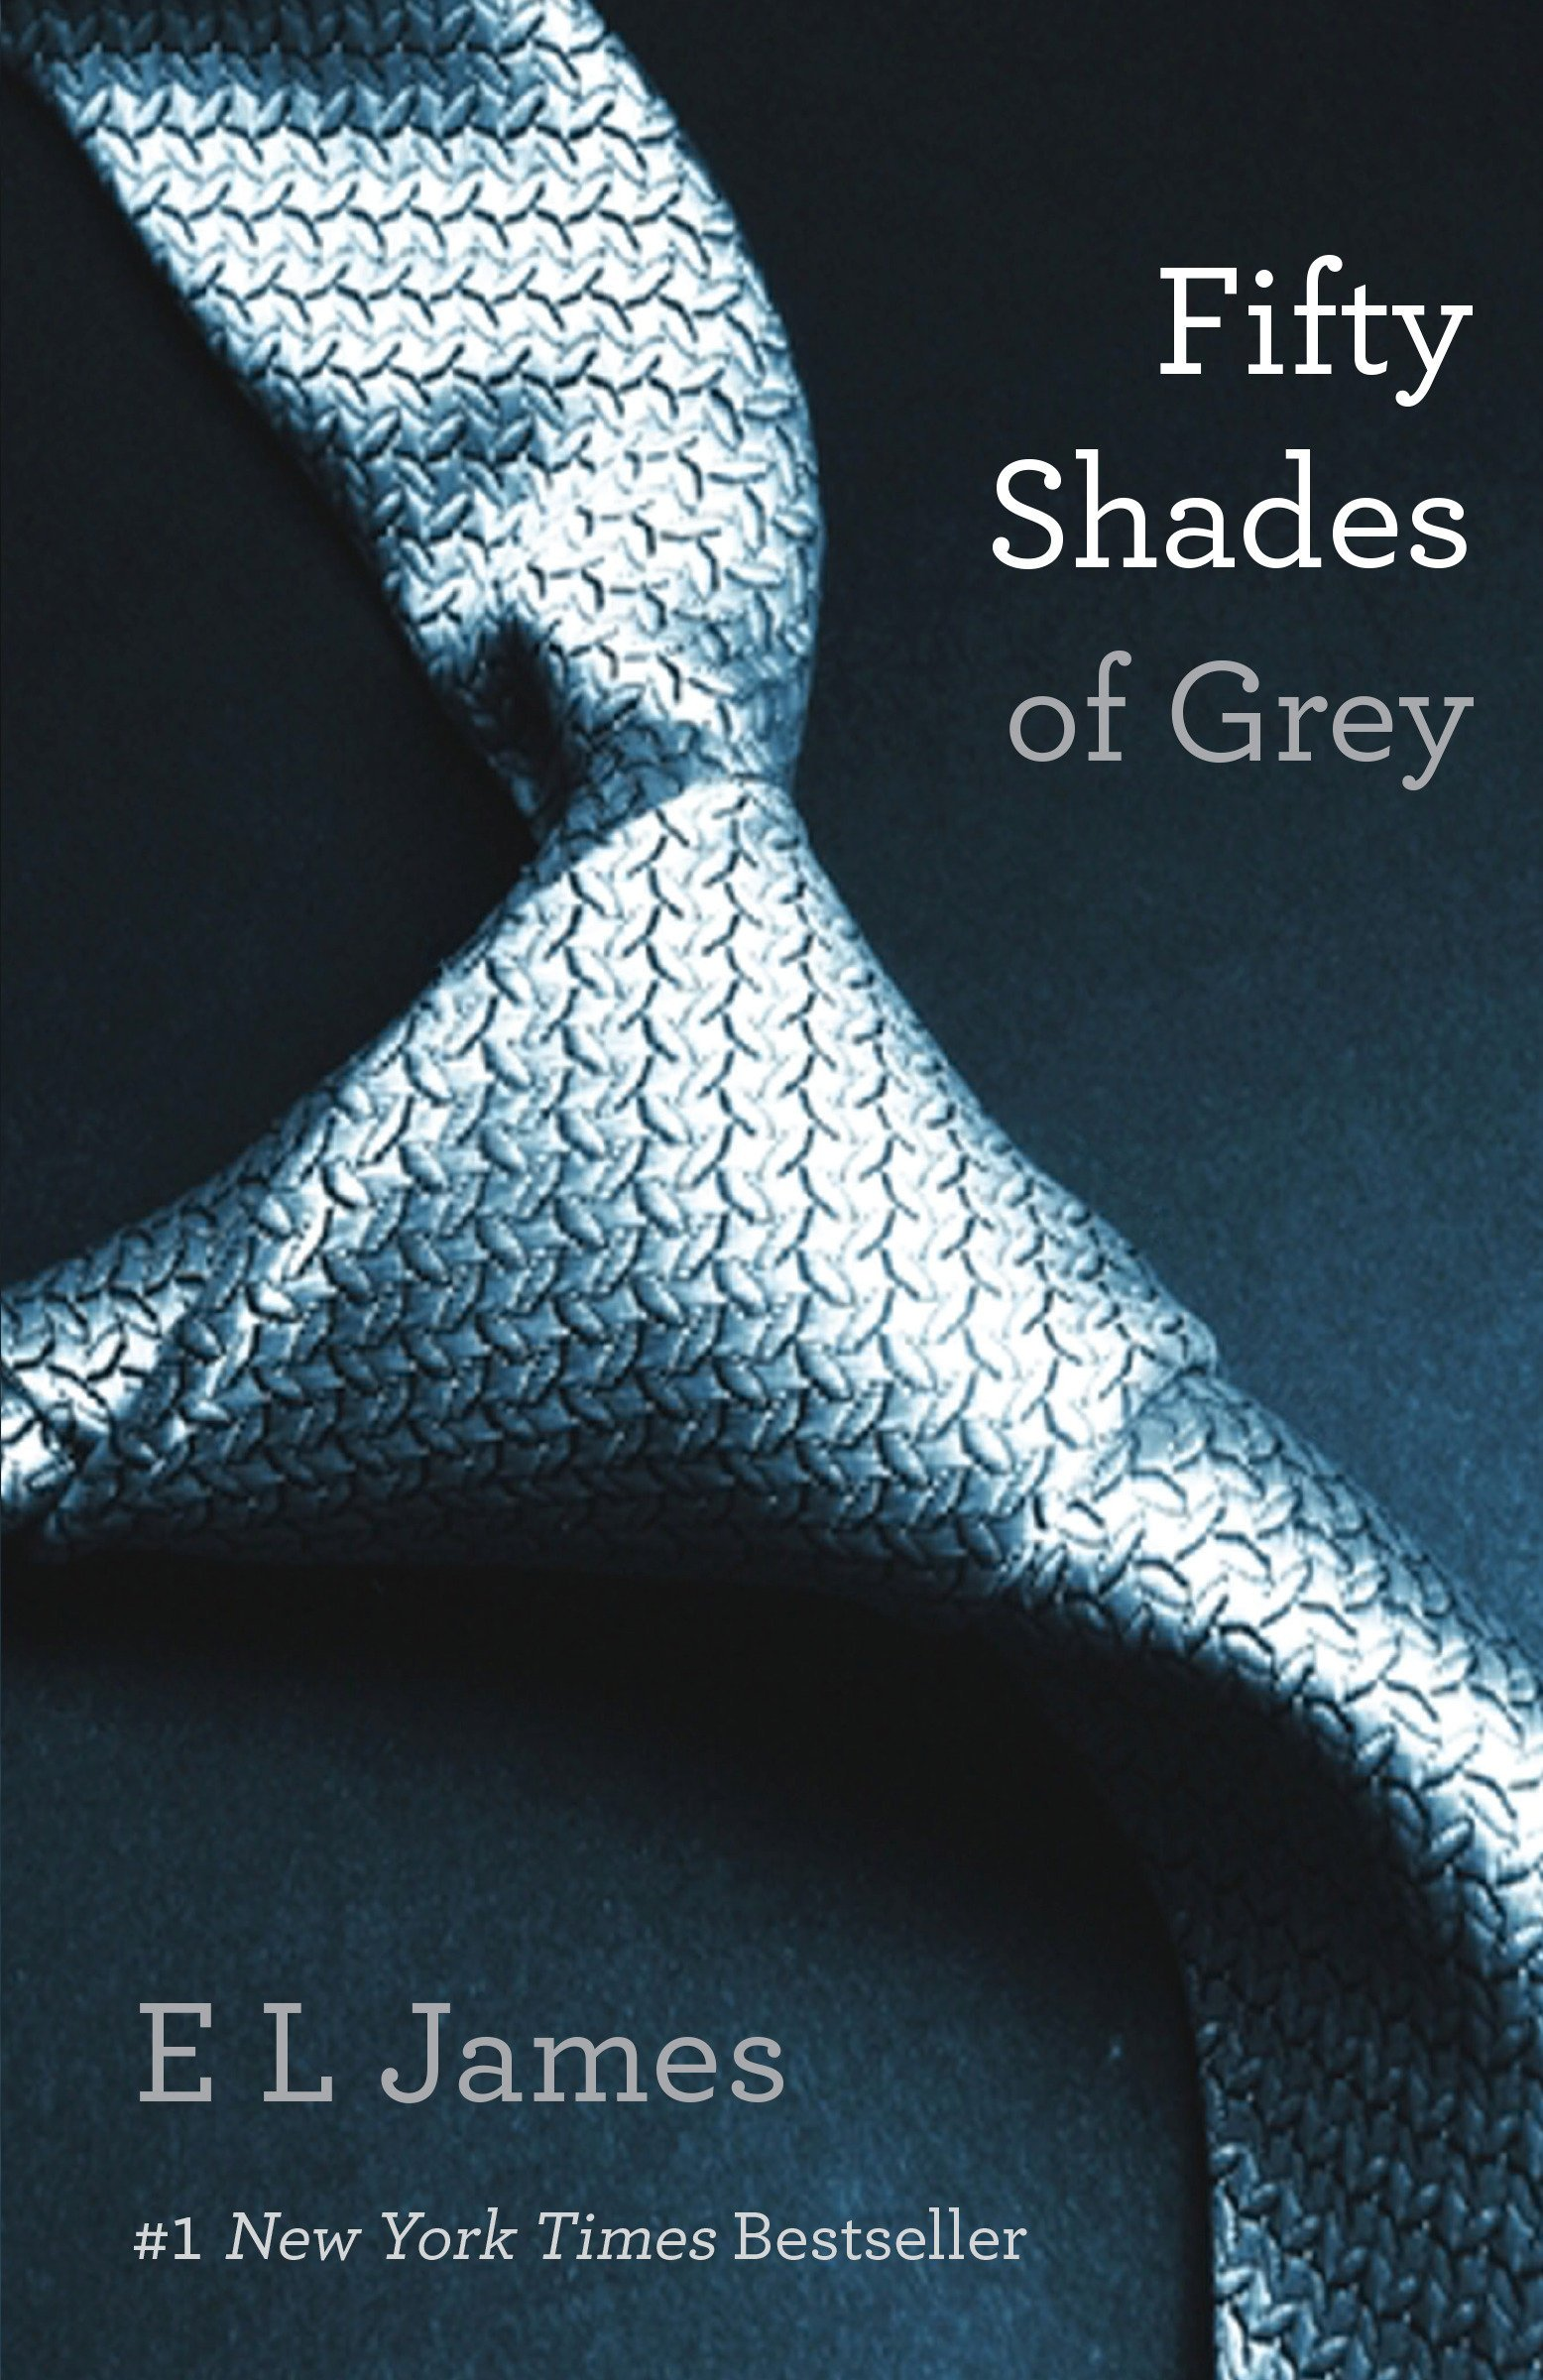 the book cover for one of e l james's bestselling books fifty shades of grey